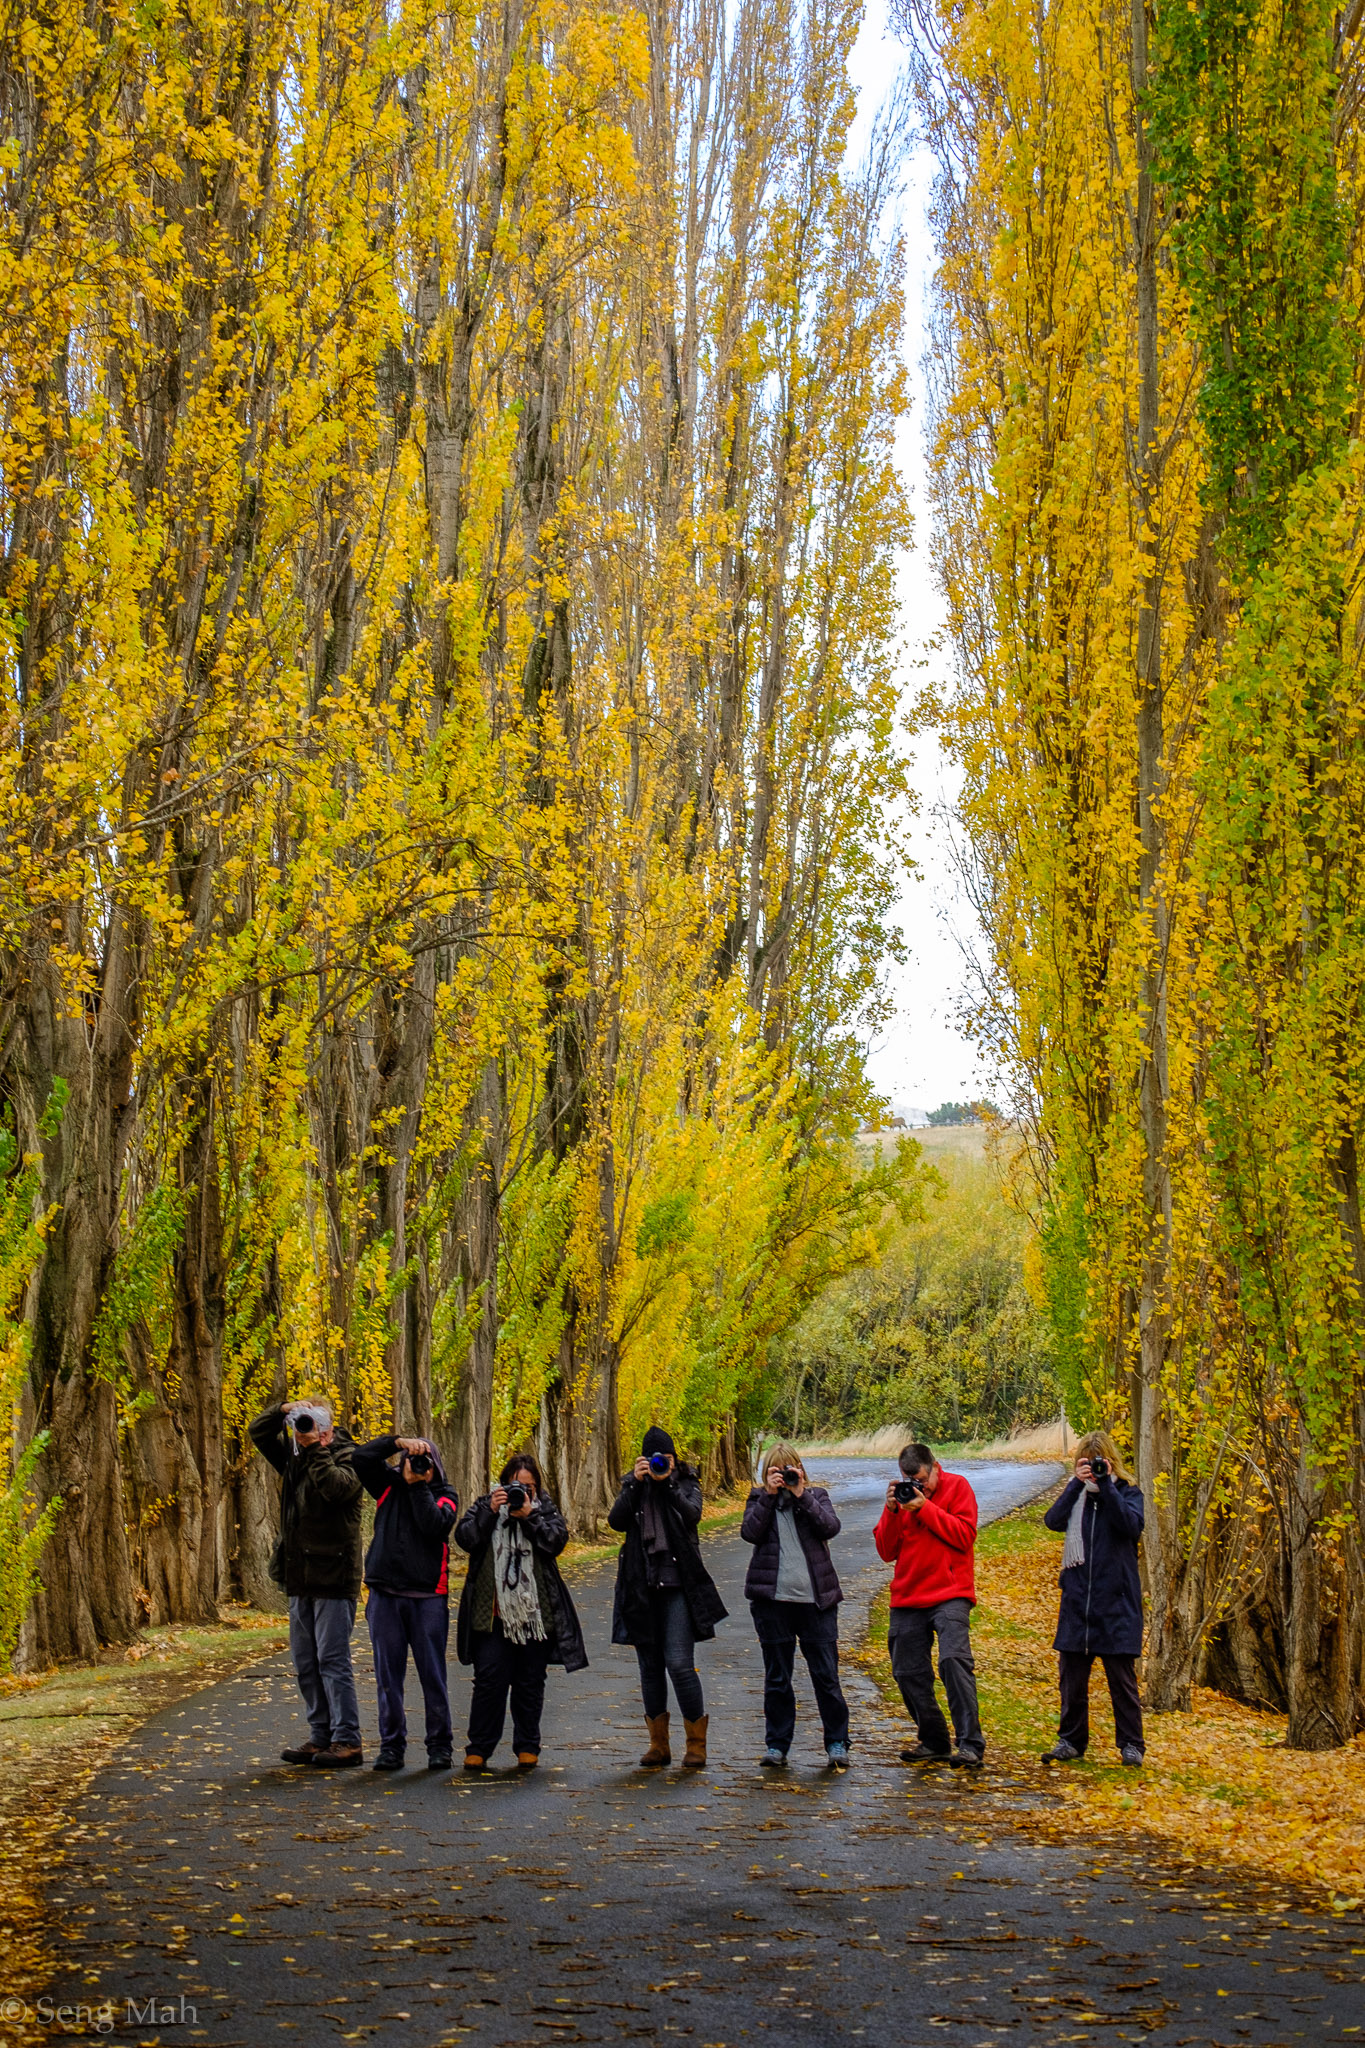 Autumn photographers